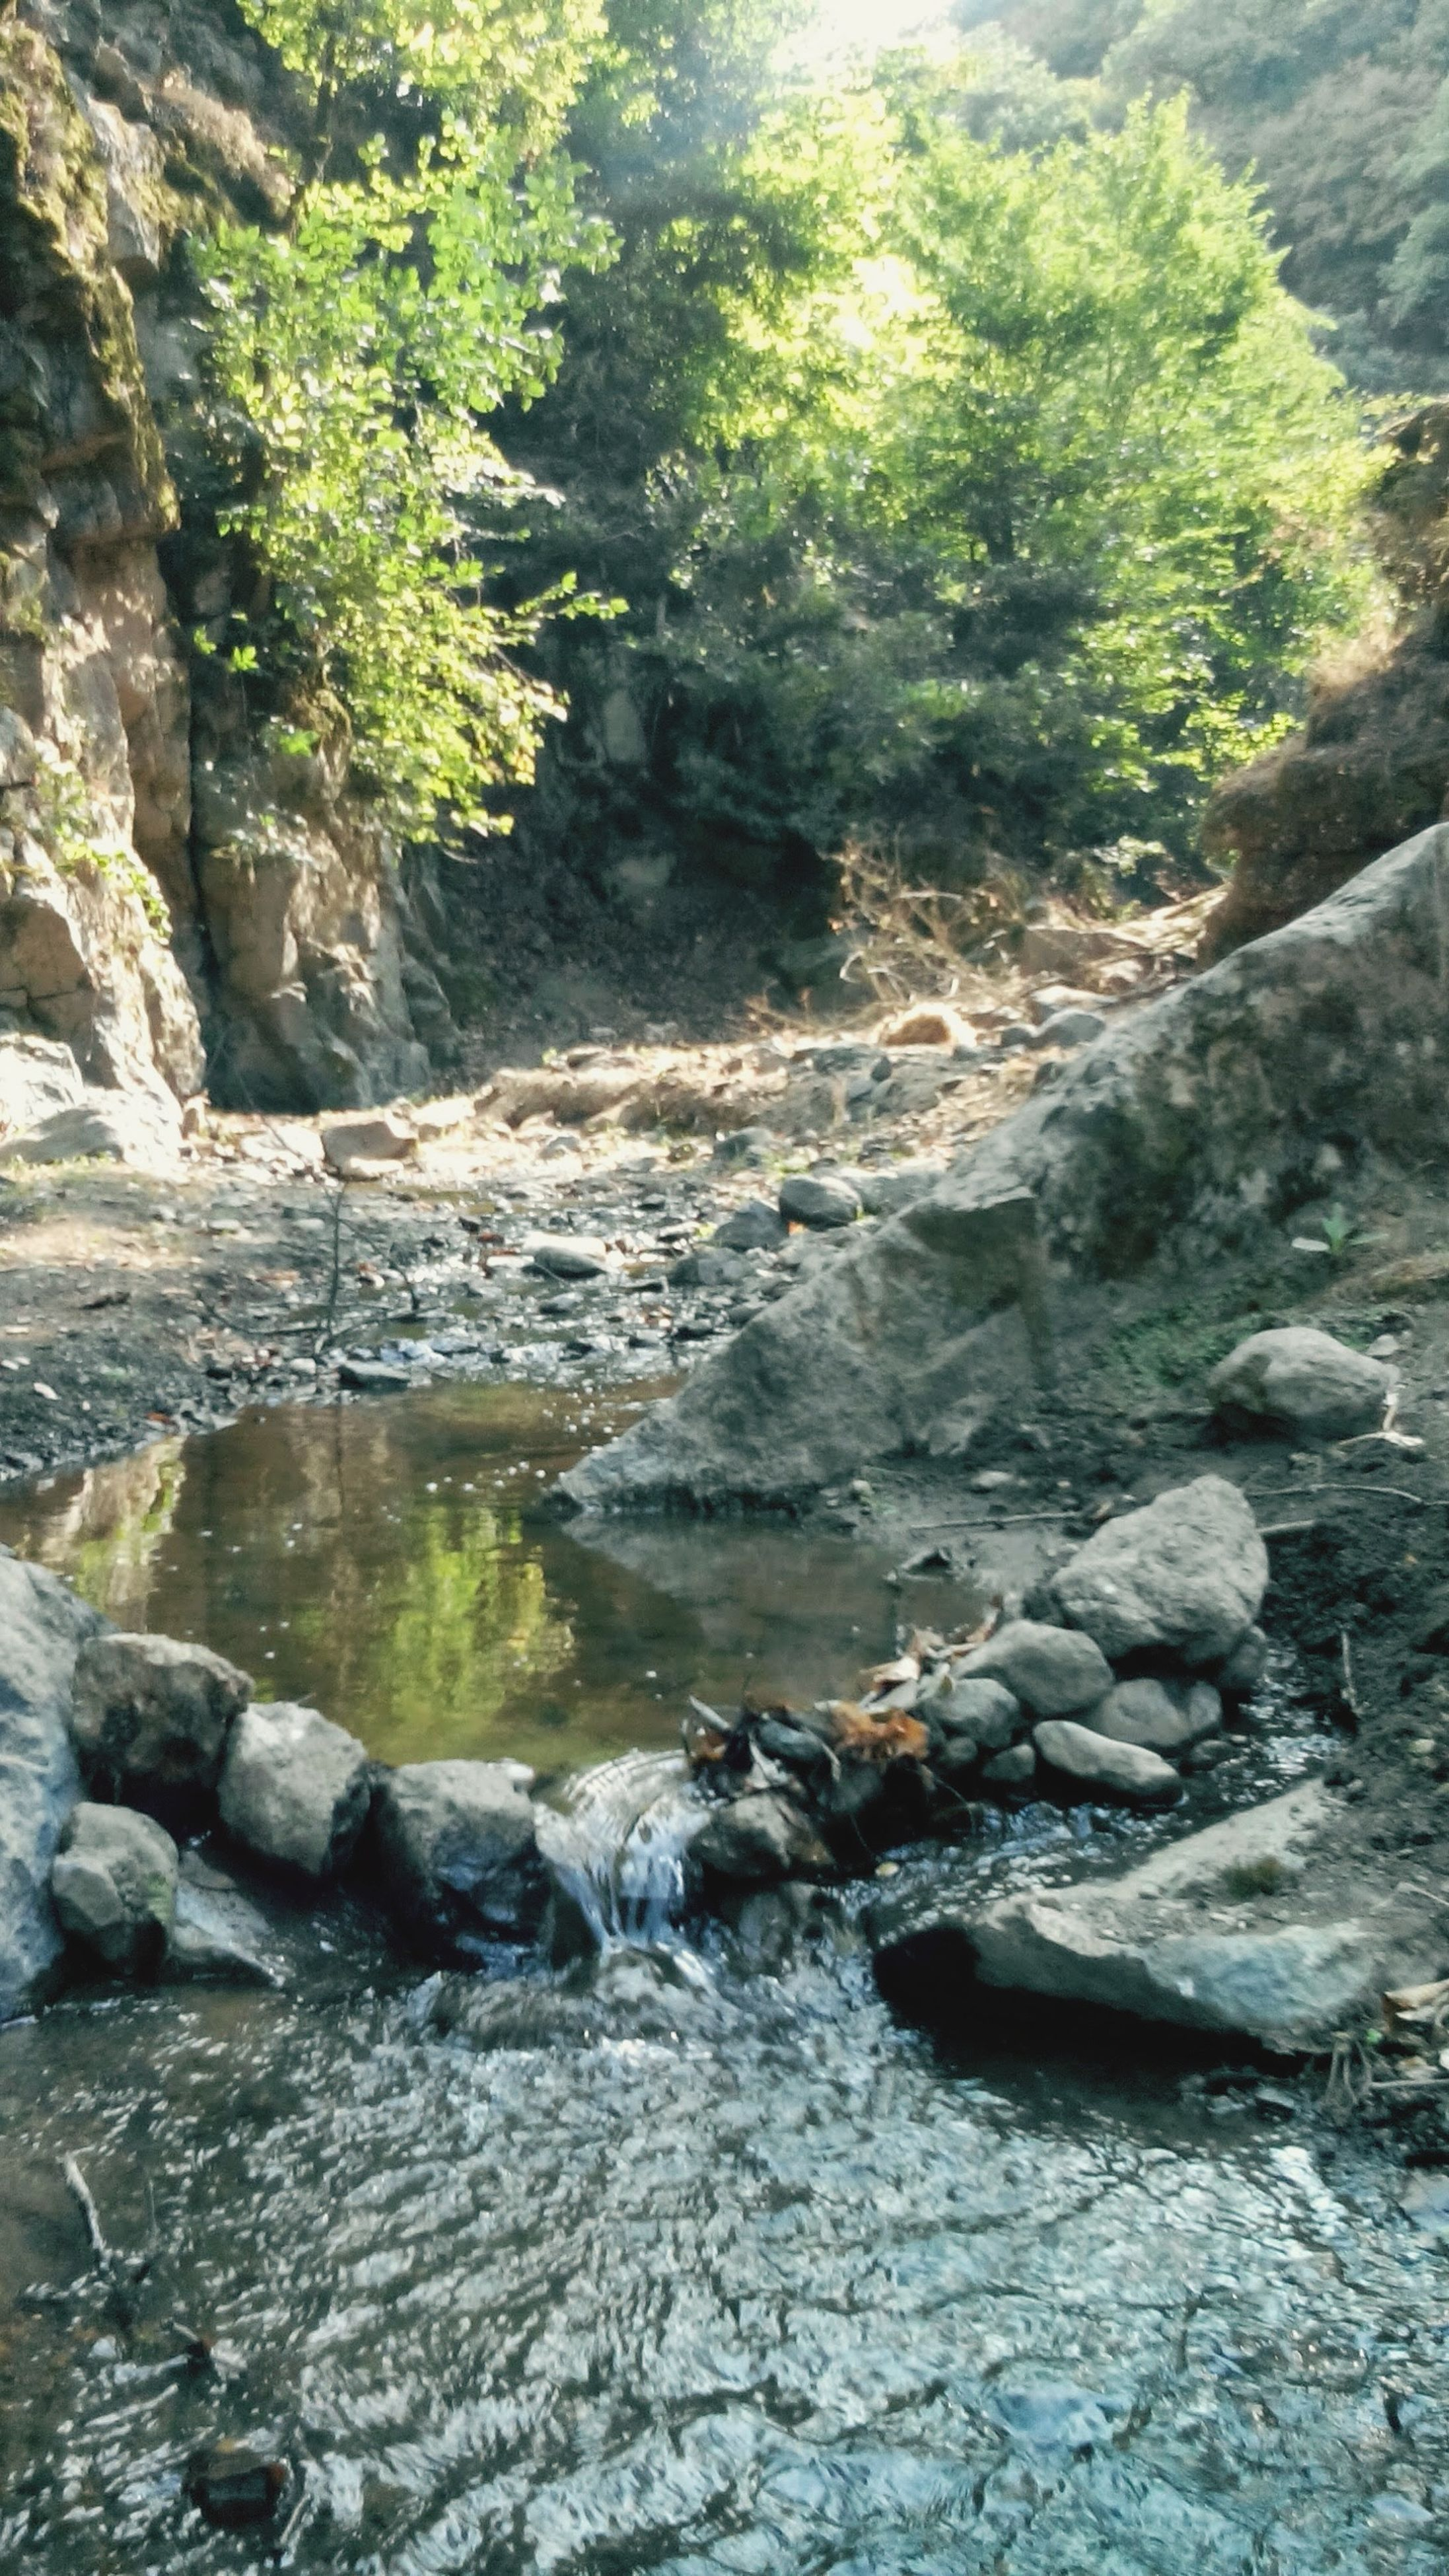 water, rock - object, rock formation, nature, beauty in nature, scenics, tree, tranquility, rock, tranquil scene, stream, river, forest, flowing water, flowing, stone, stone - object, day, outdoors, waterfront